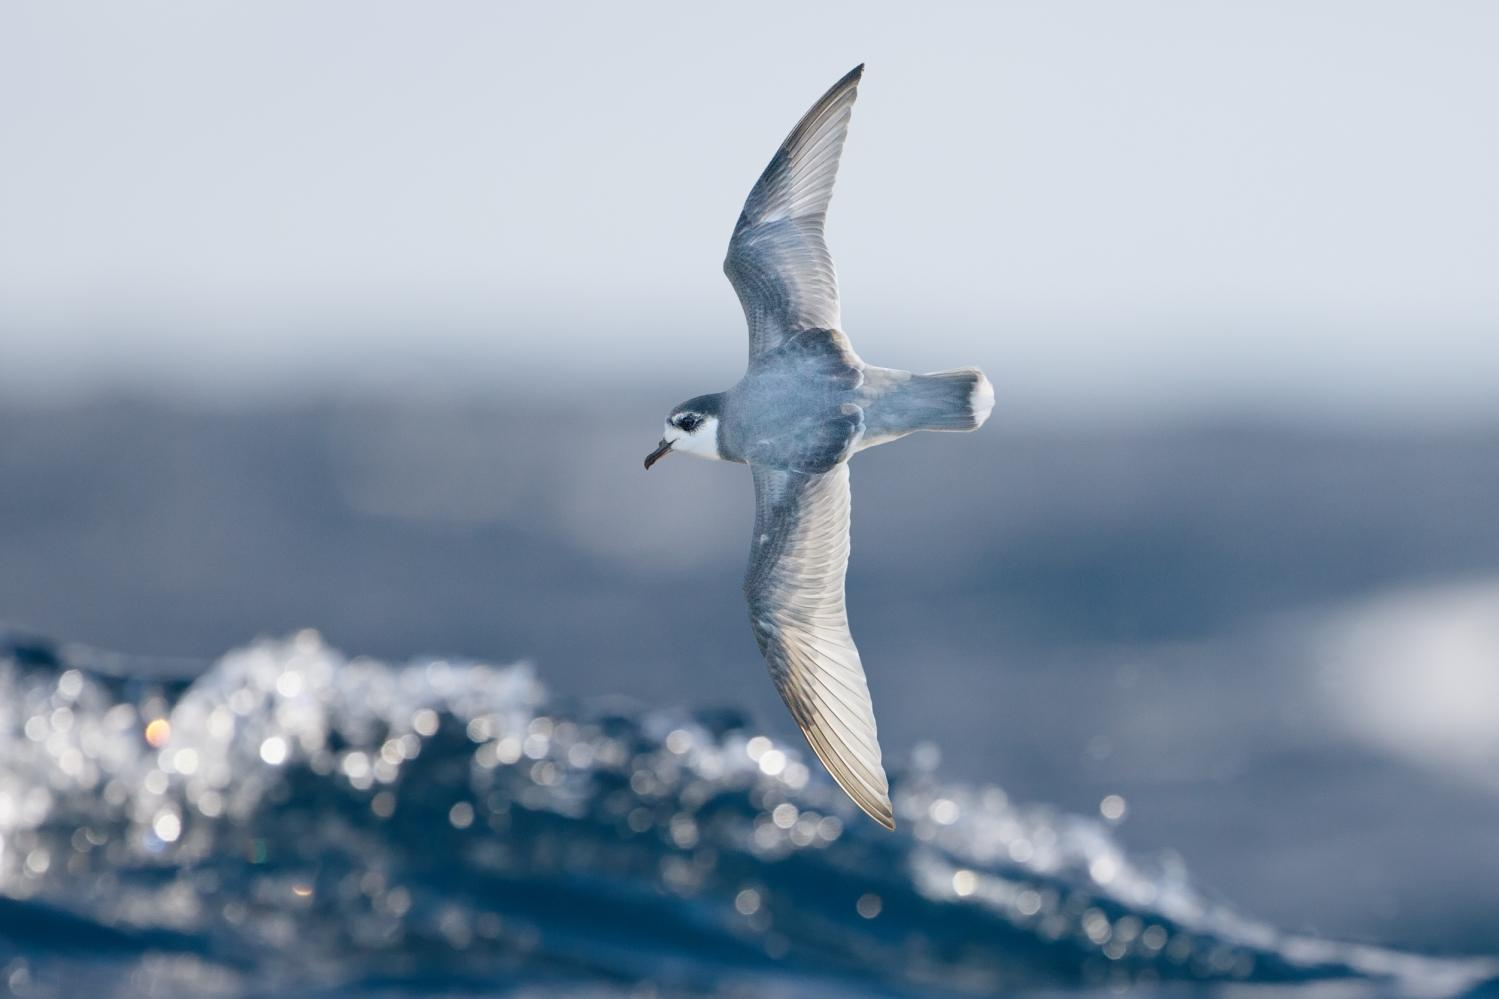 Seabirds eat plastic trash because it smells like food, UC scientists say